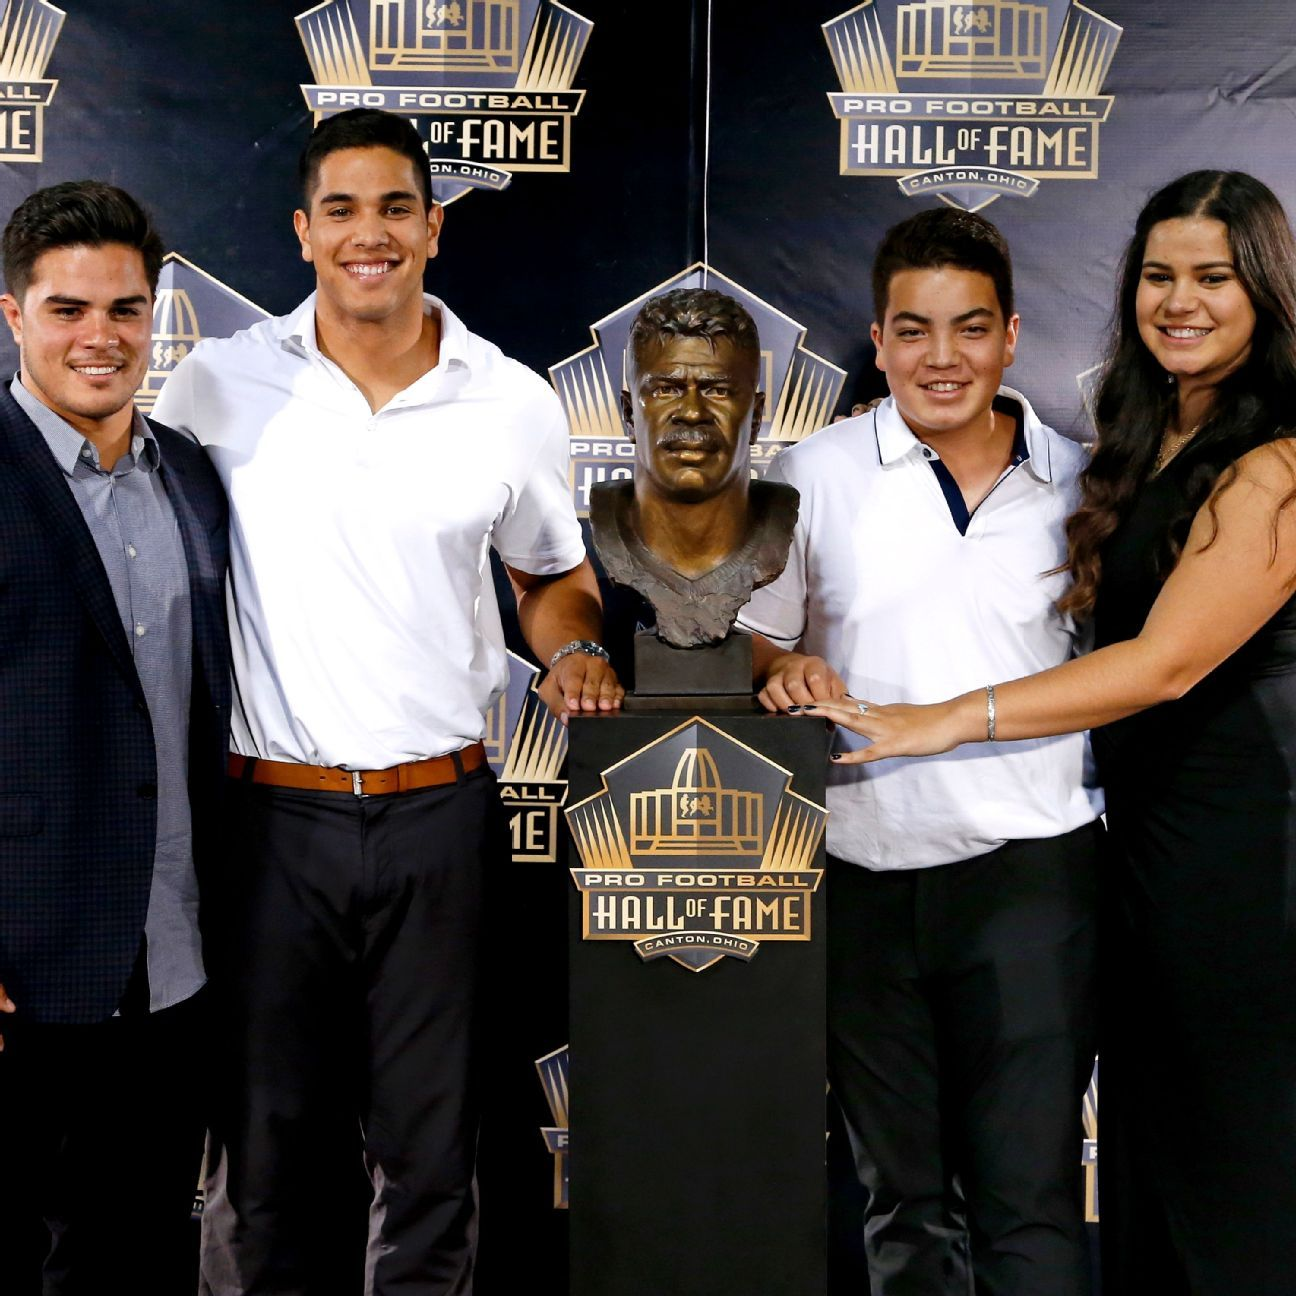 Junior Seau's light shines bright in the Hall of Fame